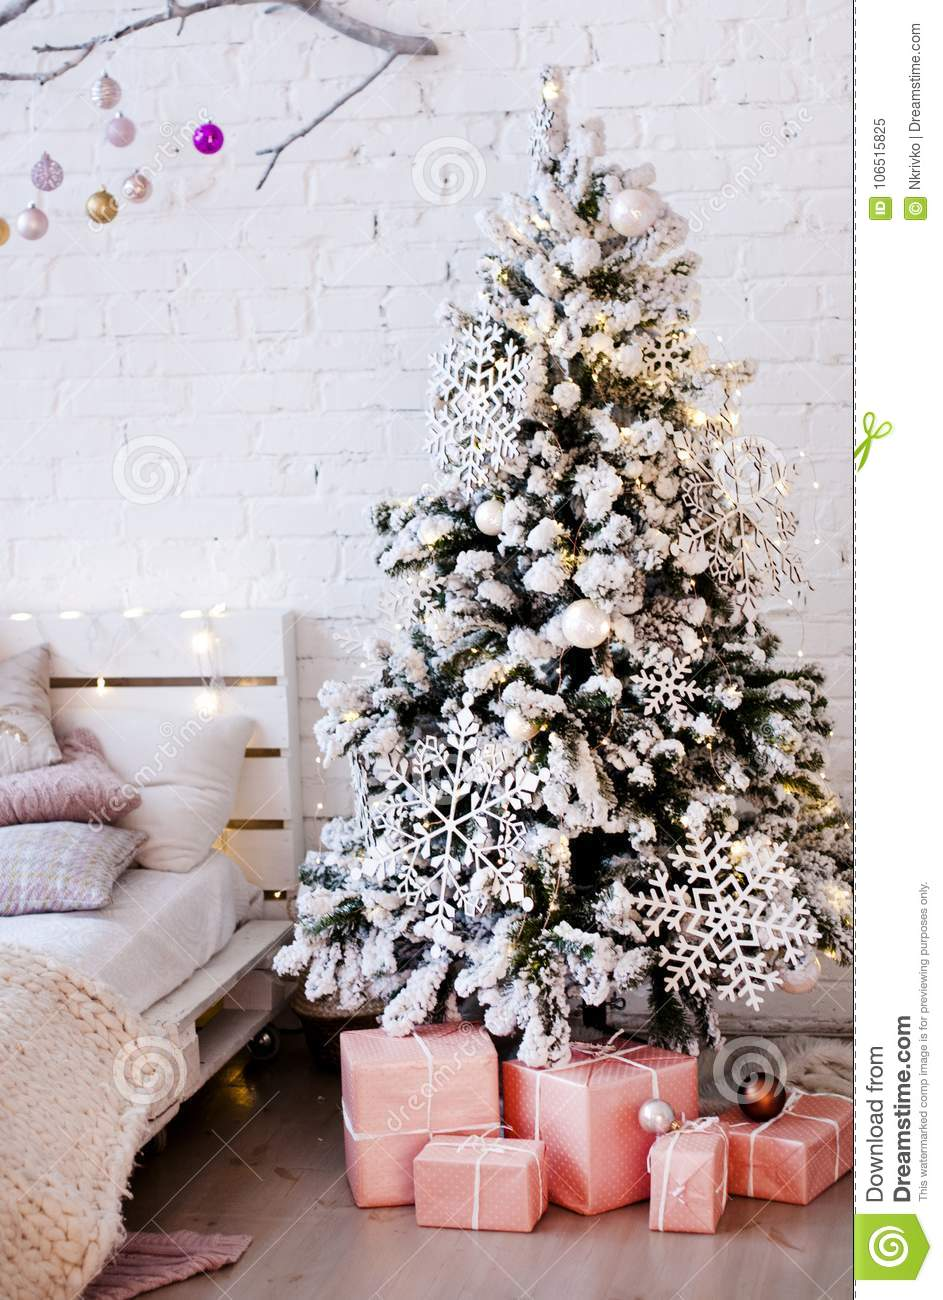 Christmas Tree Decorated With Large Wooden Snowflakes Near The Bed